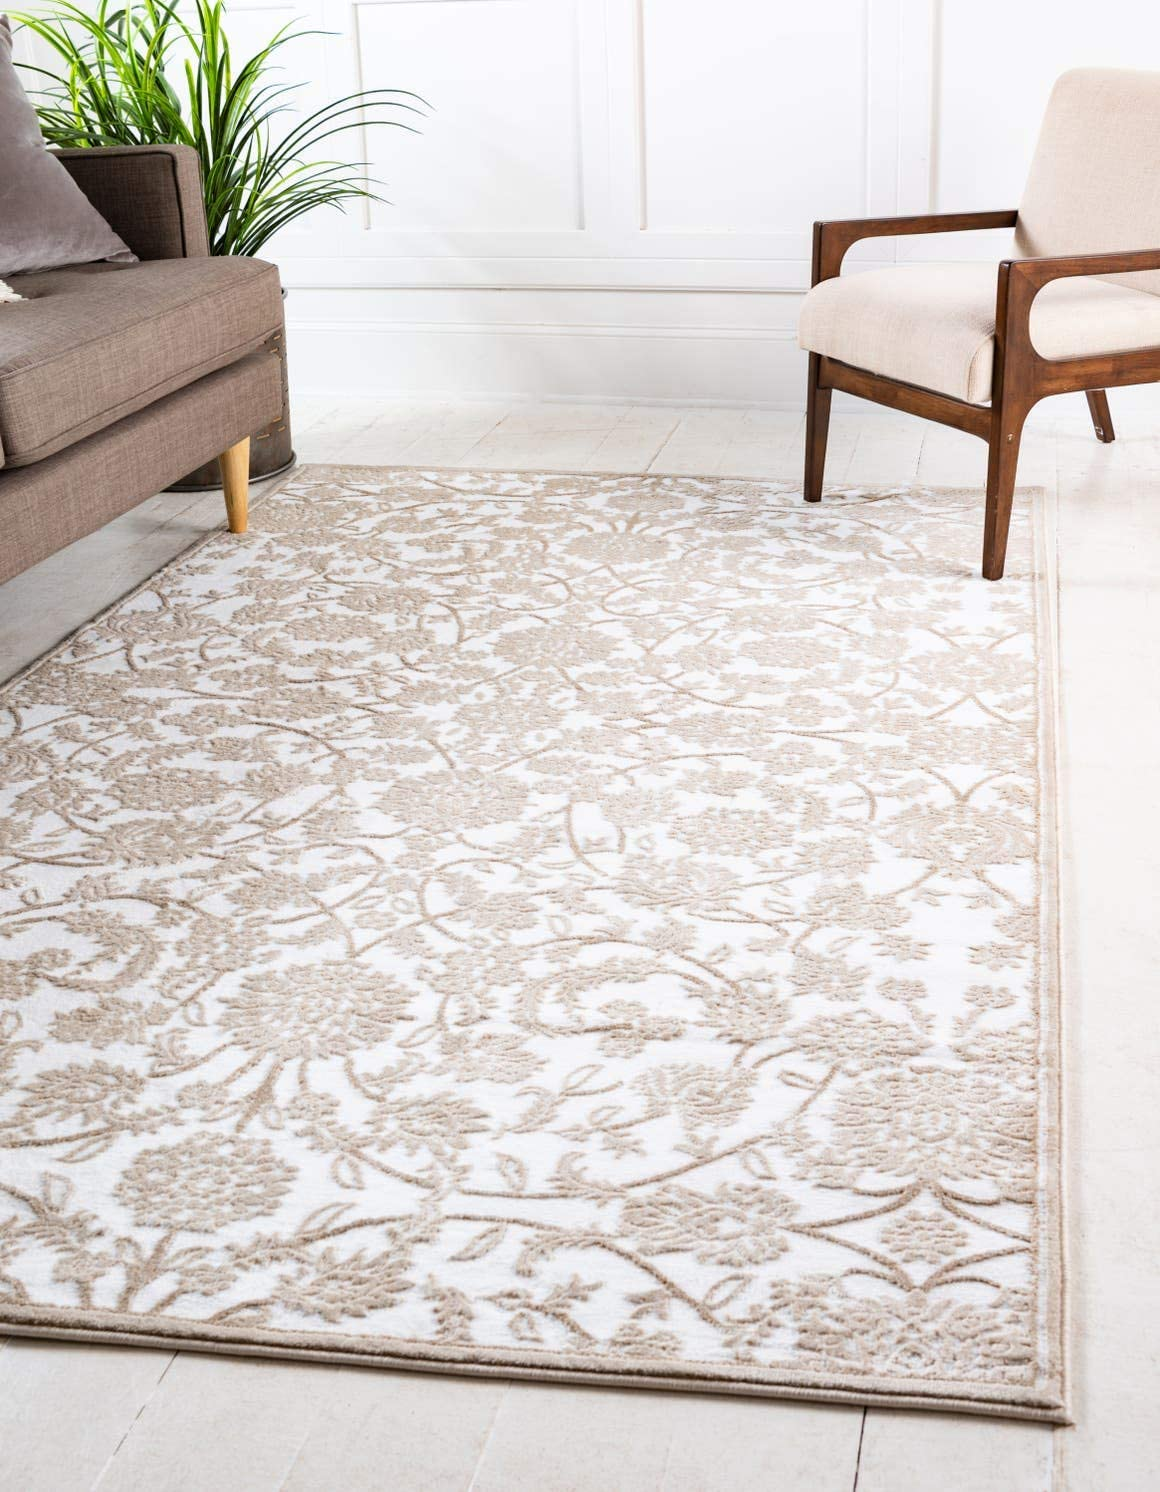 Unique Loom Rushmore Collection Traditional White Tone-on-Tone Snow White Area Rug 10 0 x 13 0